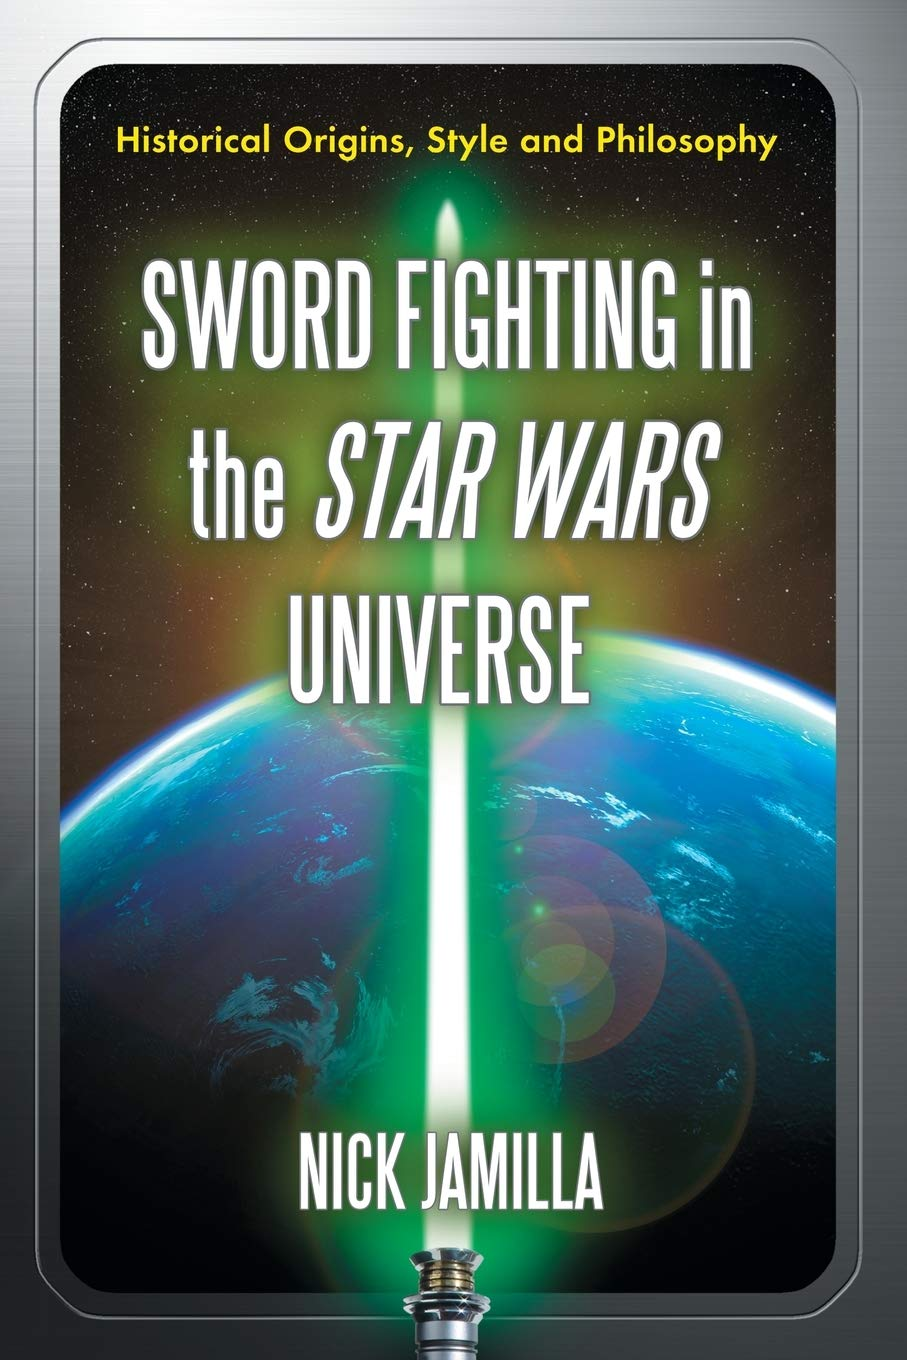 Sword-Fighting in the Star Wars Universe